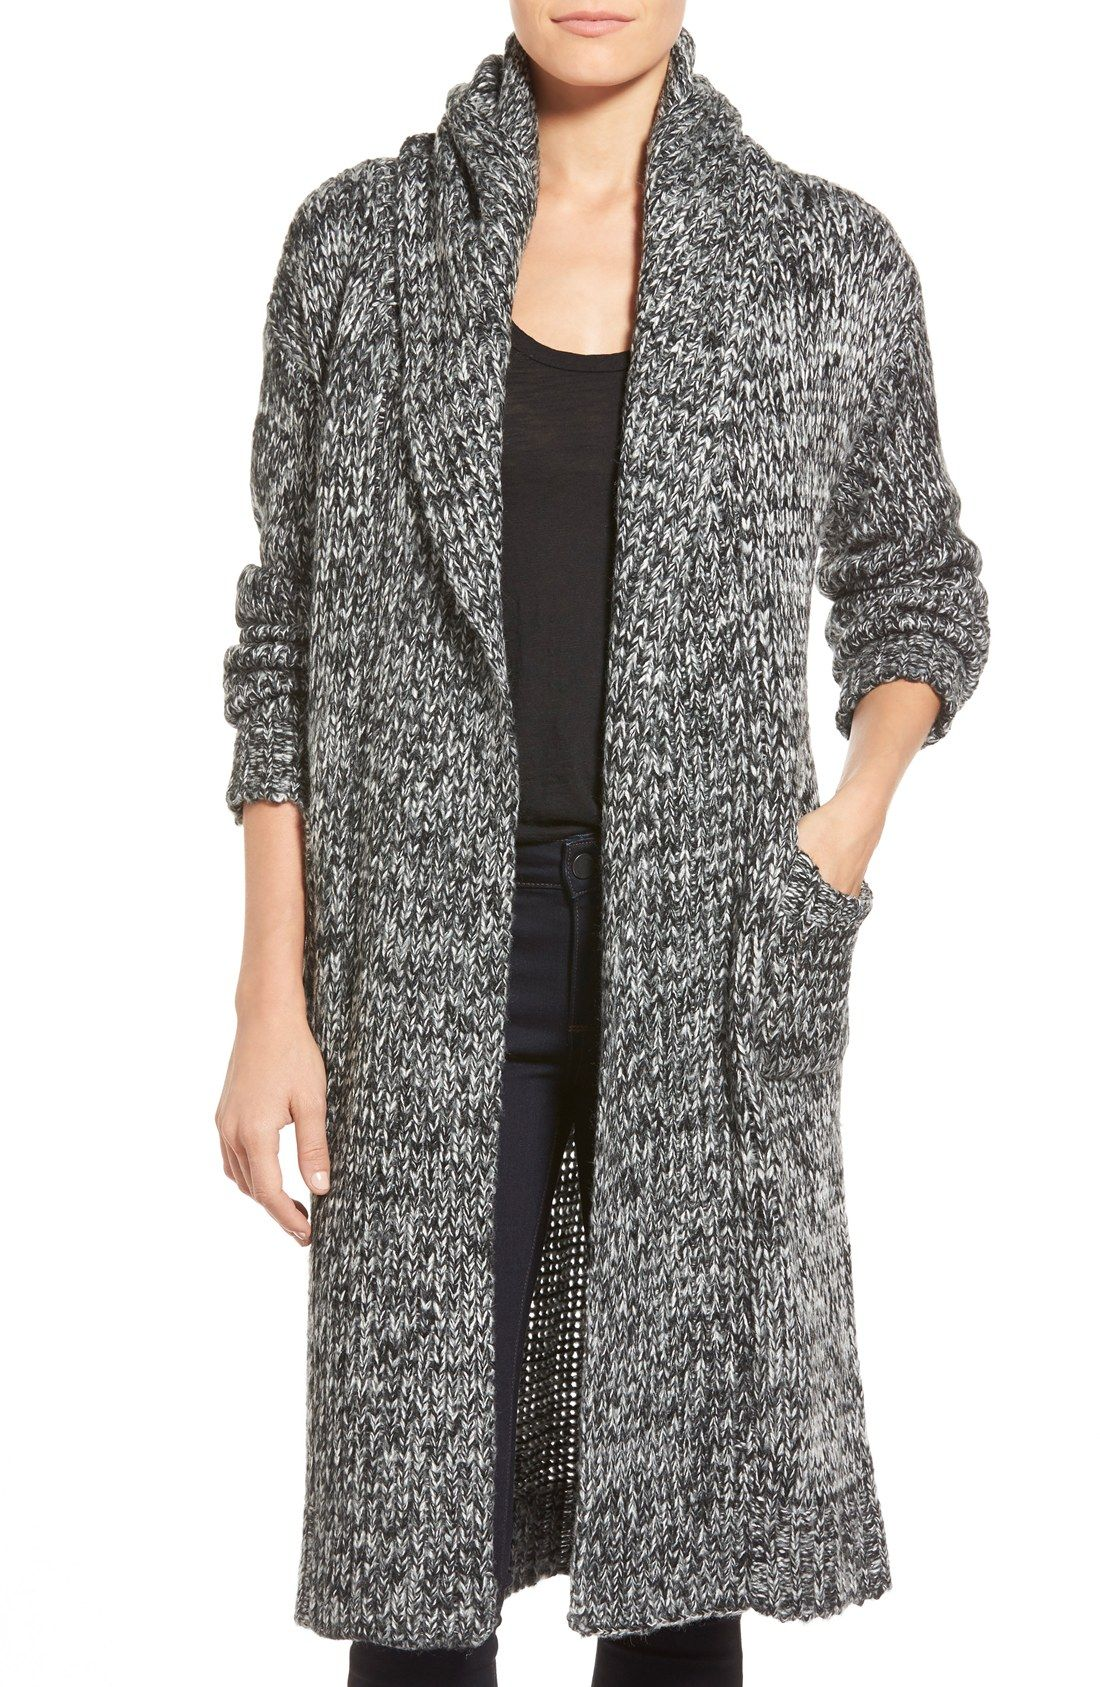 coin 1804 Cozy Chunky Long Hooded Cardigan   Shopping: Wishing and ...